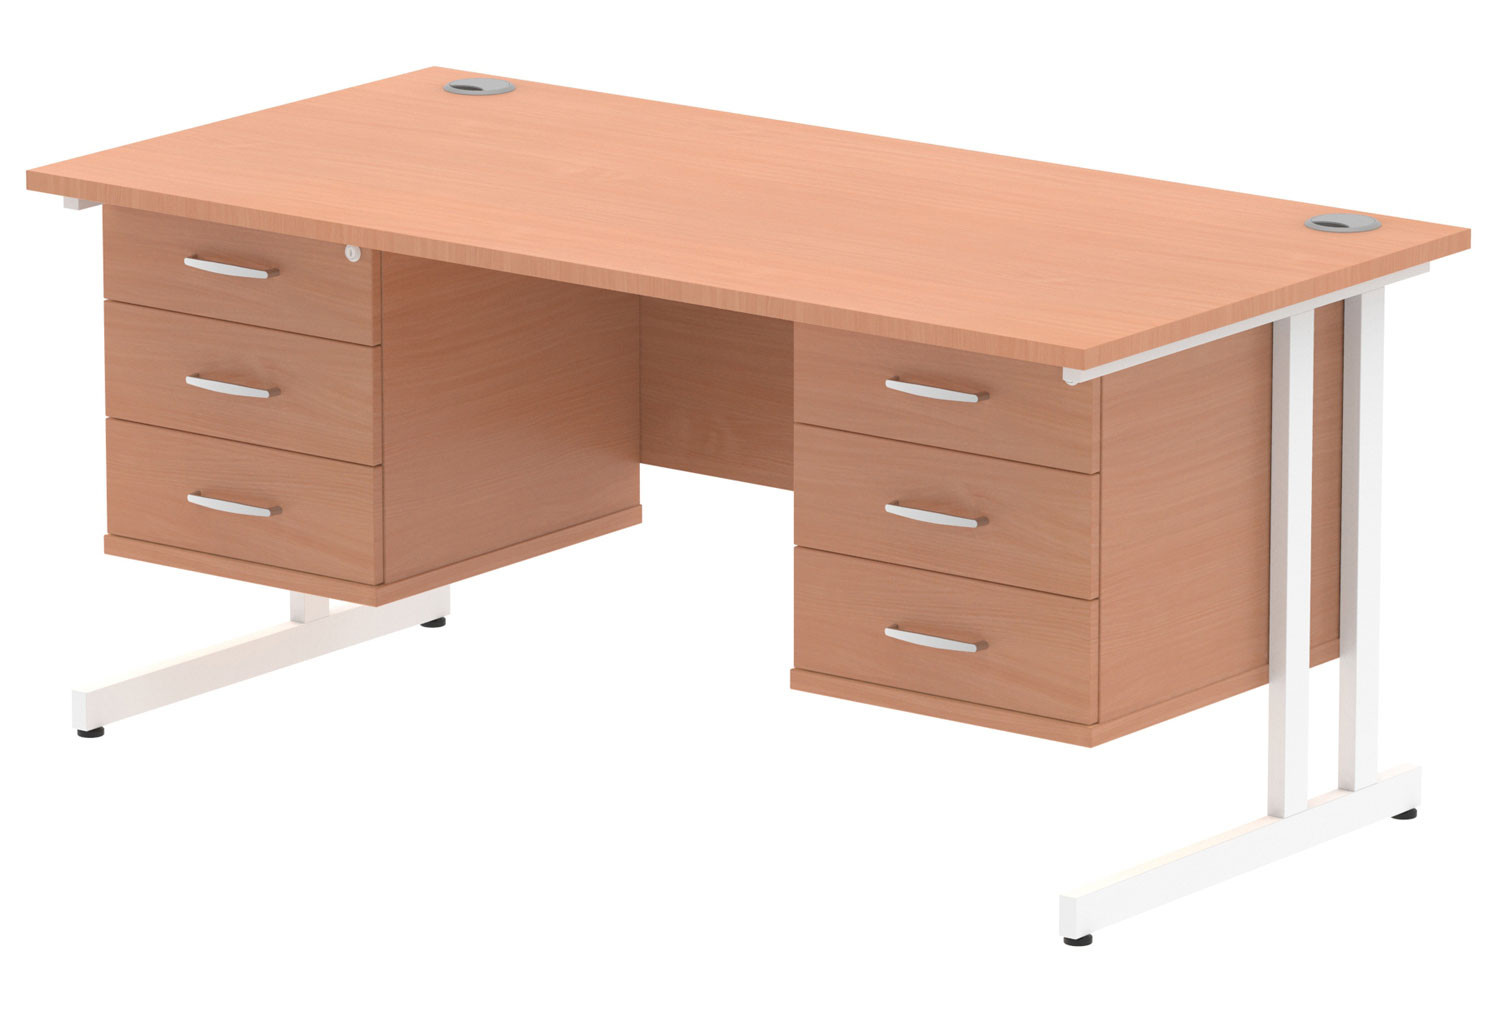 Vitali C-Leg Rectangular Desk 3+3 Drawers (White Legs)